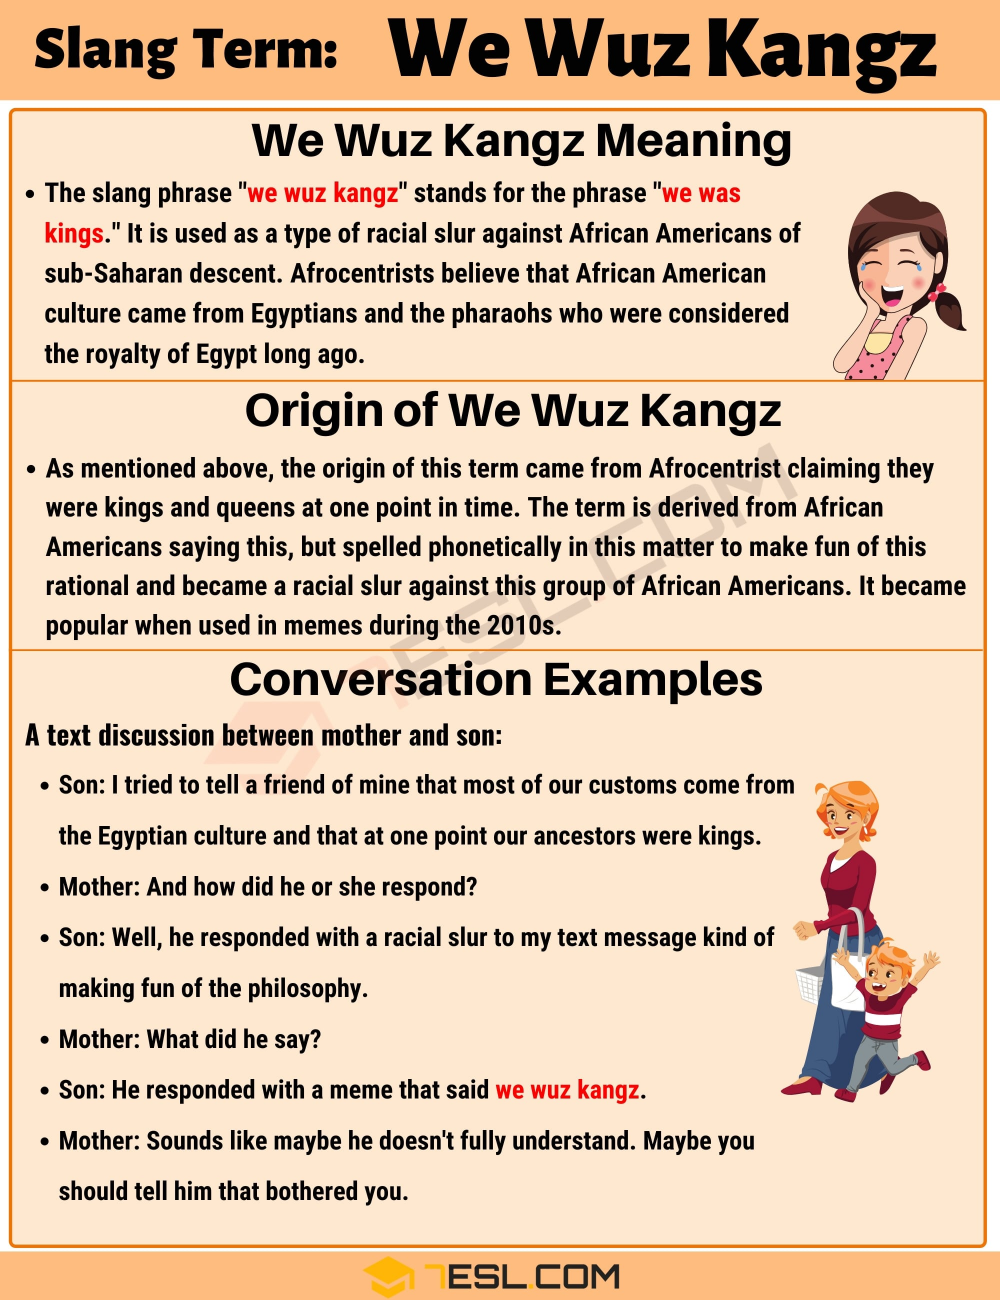 We Wuz Kangz Meaning With Useful Conversations In English 7 E S L Conversational English Learn English English Phrases